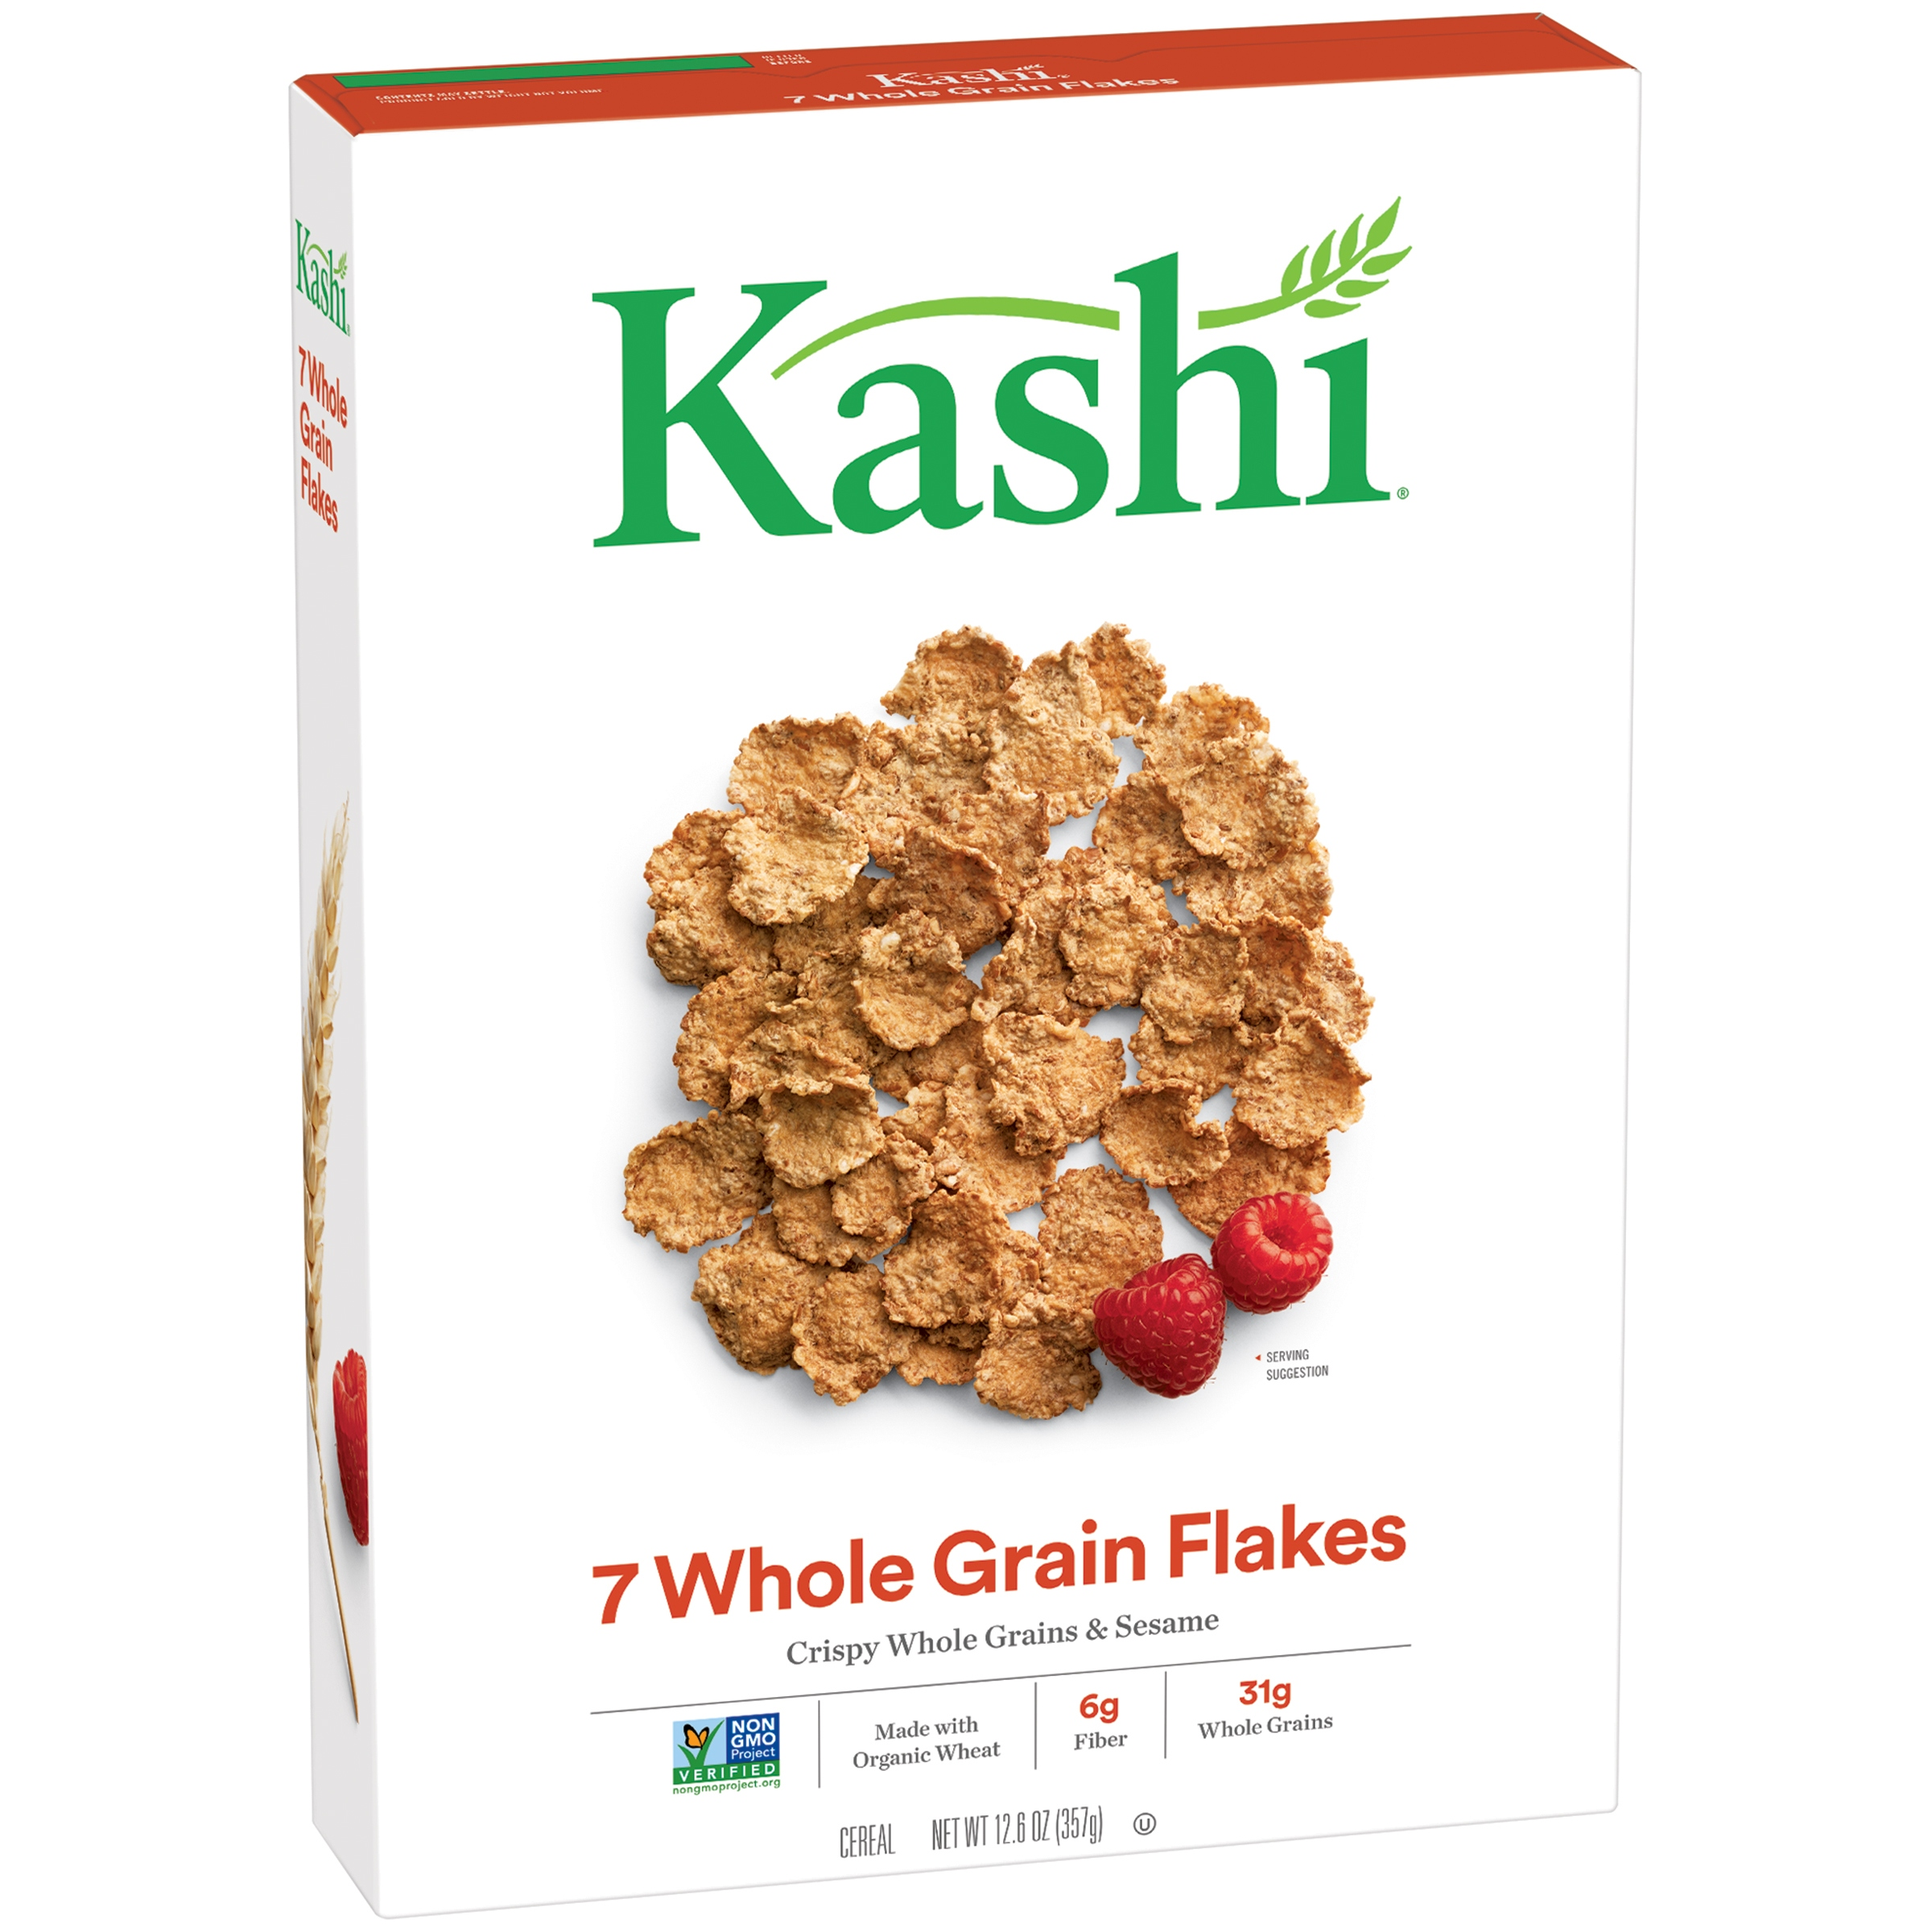 Kashi® 7 Whole Grain Flakes Cereal 12.6 oz. Box